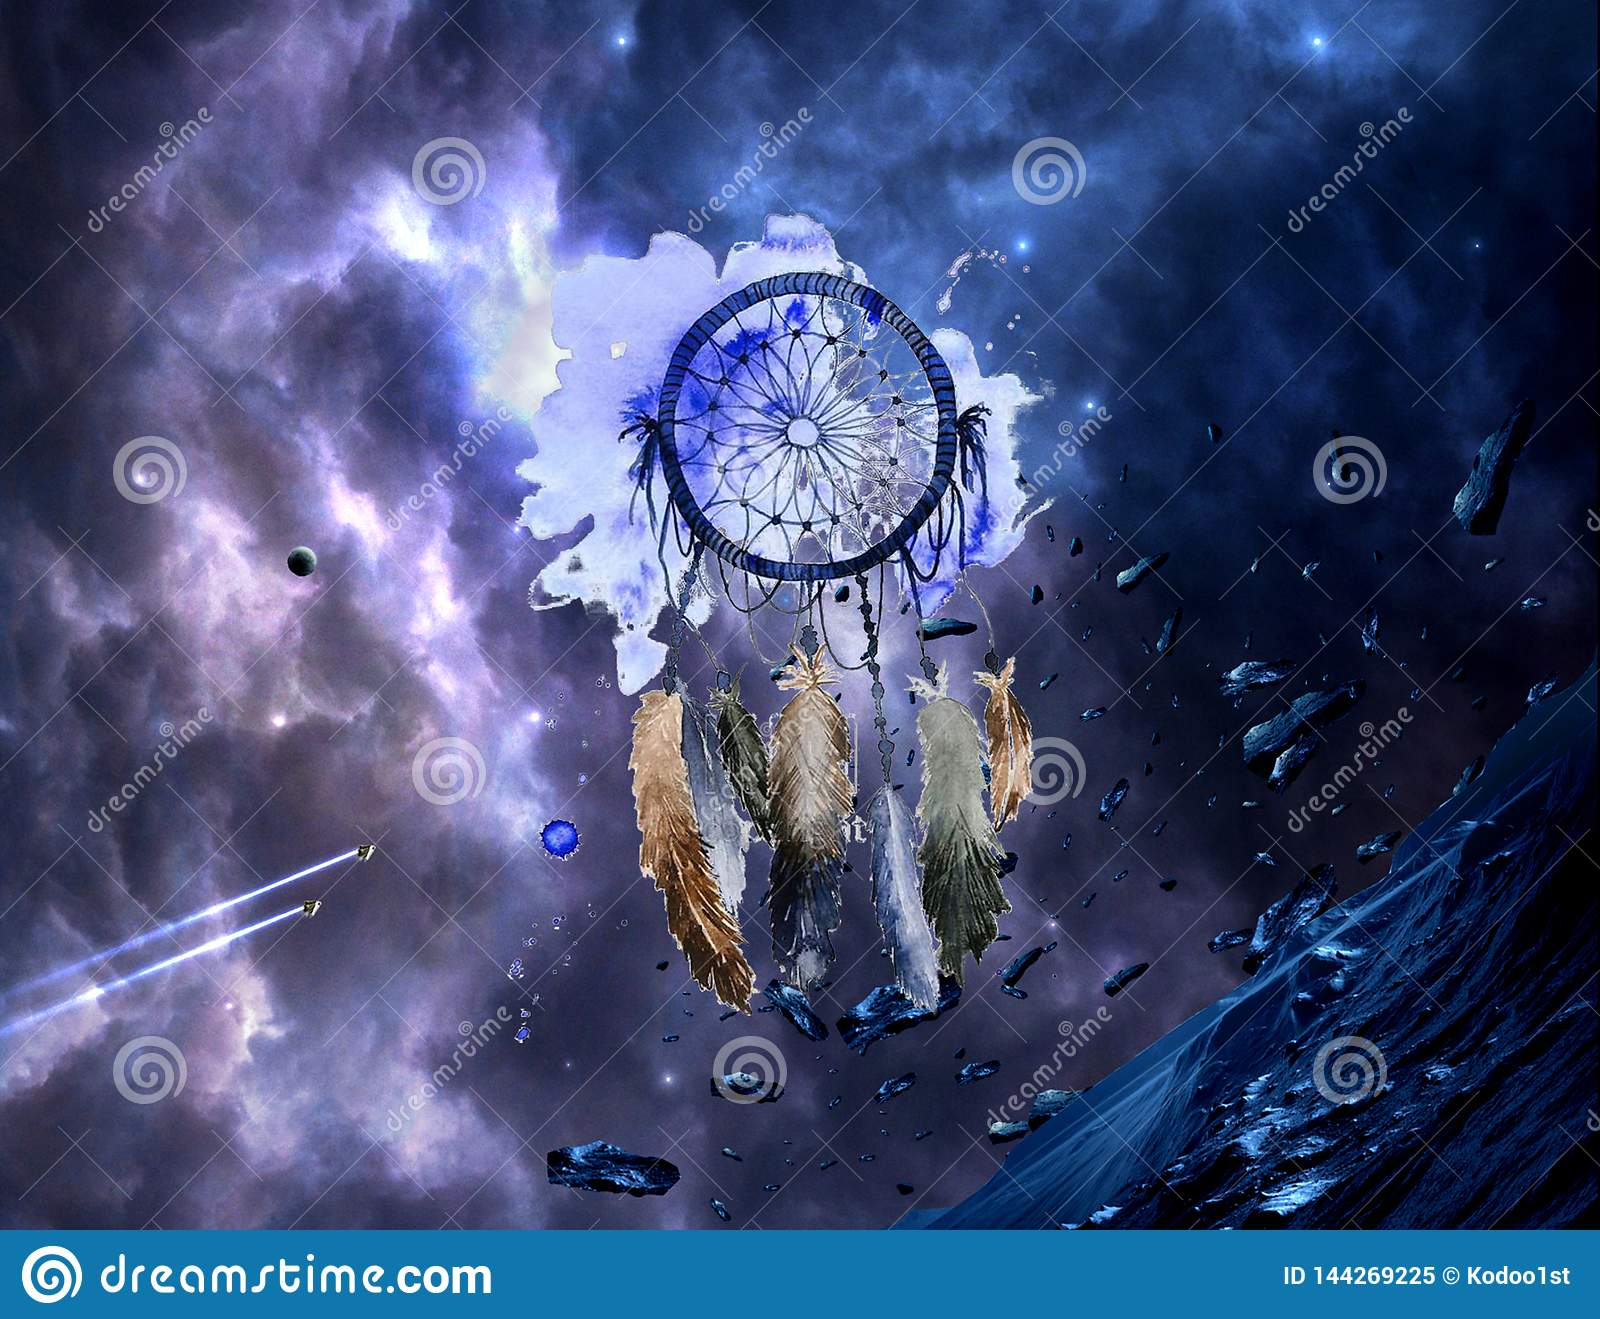 abstract artistic watercolor multicolored dream catcher colorful nebula galactic artwork background galaxy 144269225